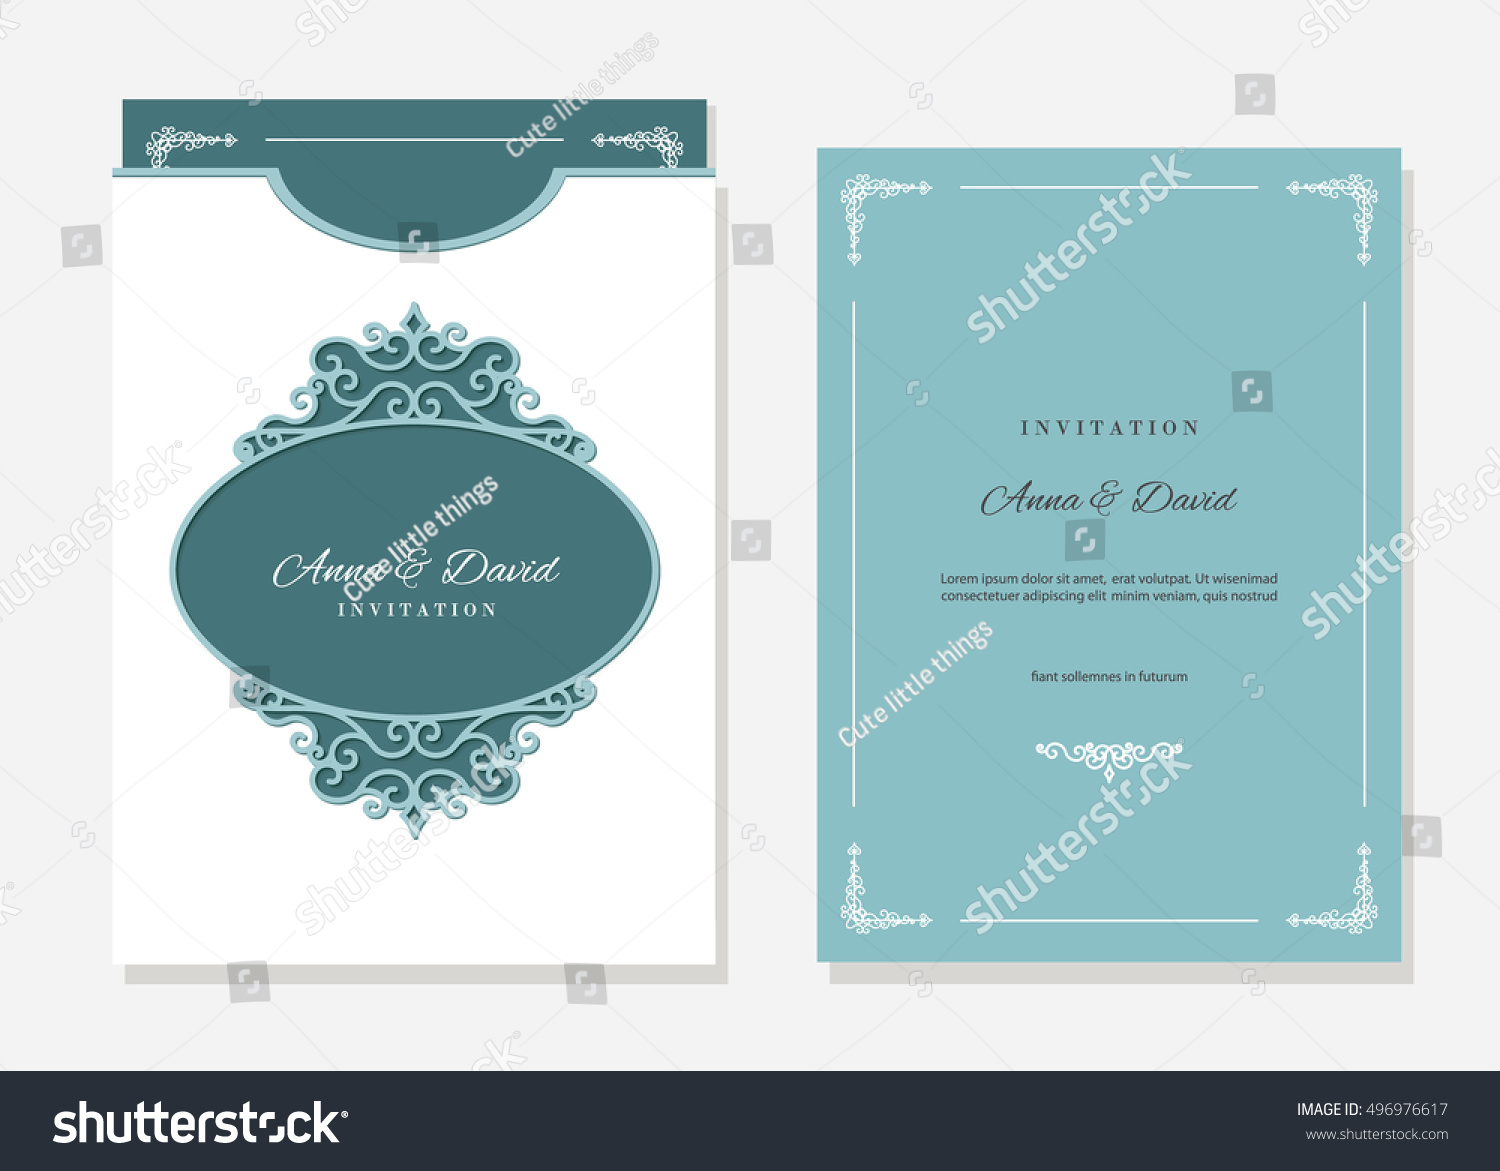 Wedding Invitation Envelope Template Laser Cutting Stock Vector ...